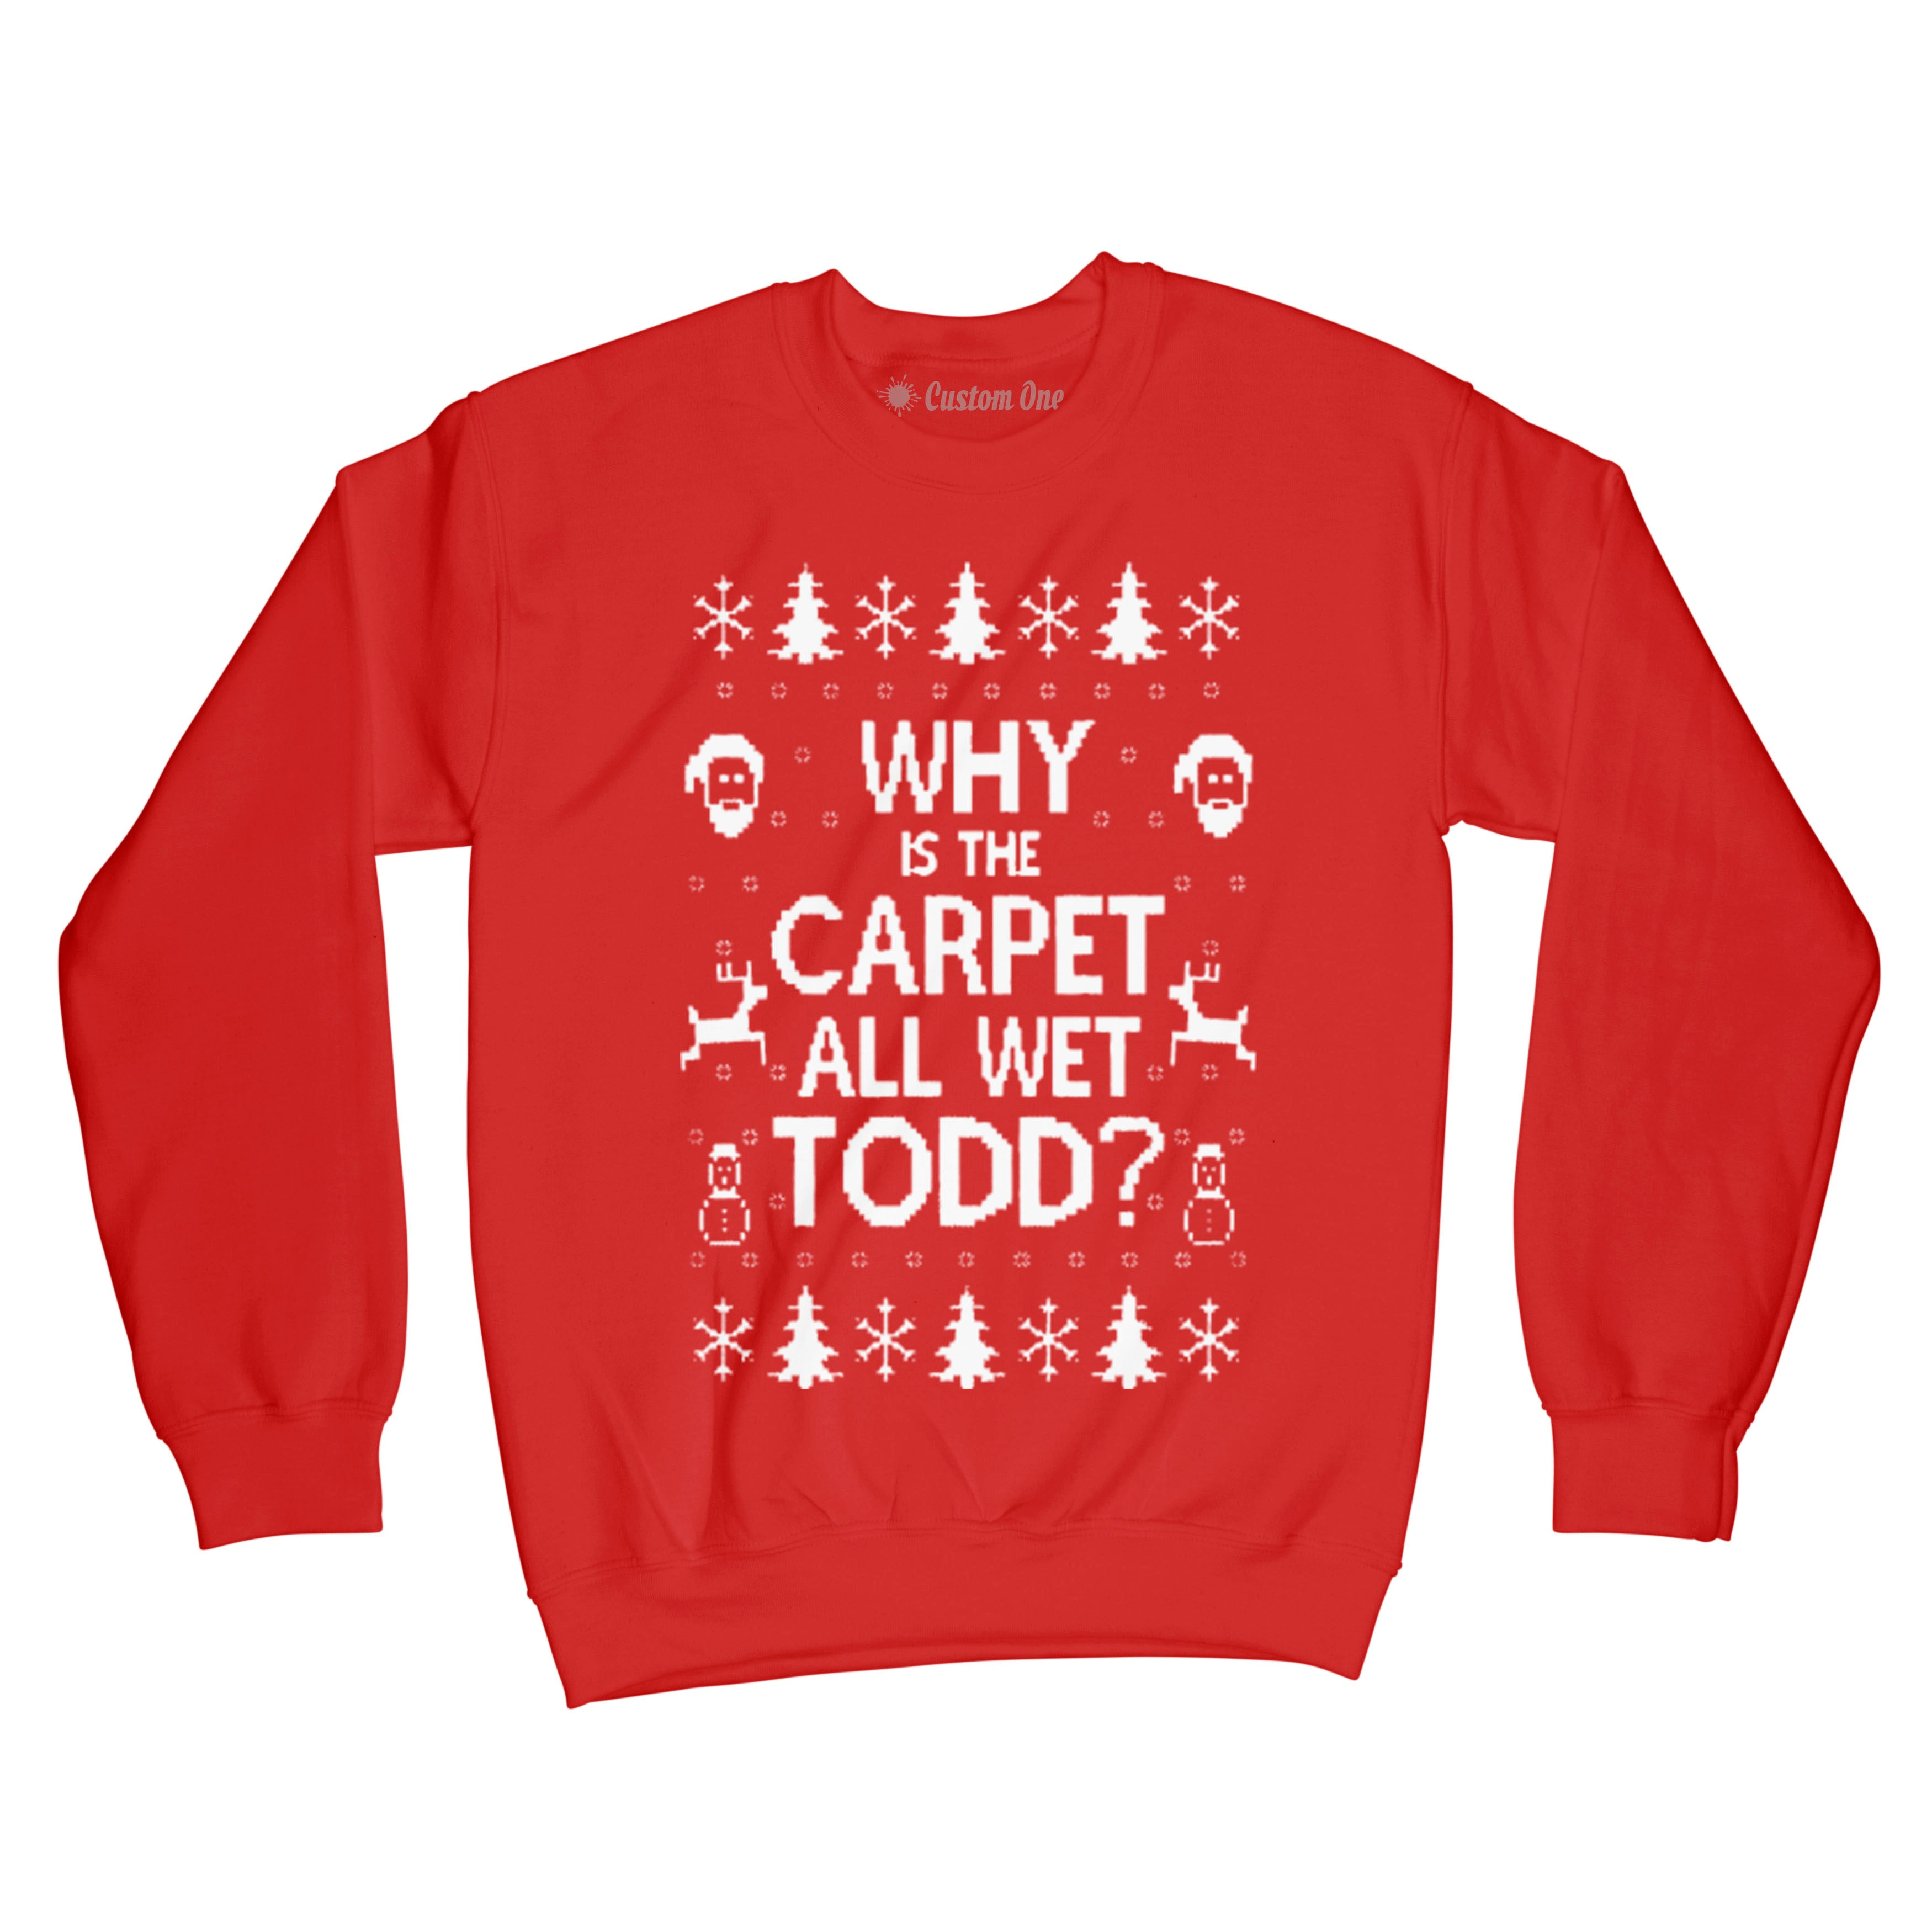 Why is the Carpet All Wet Todd?, Christmas Sweater